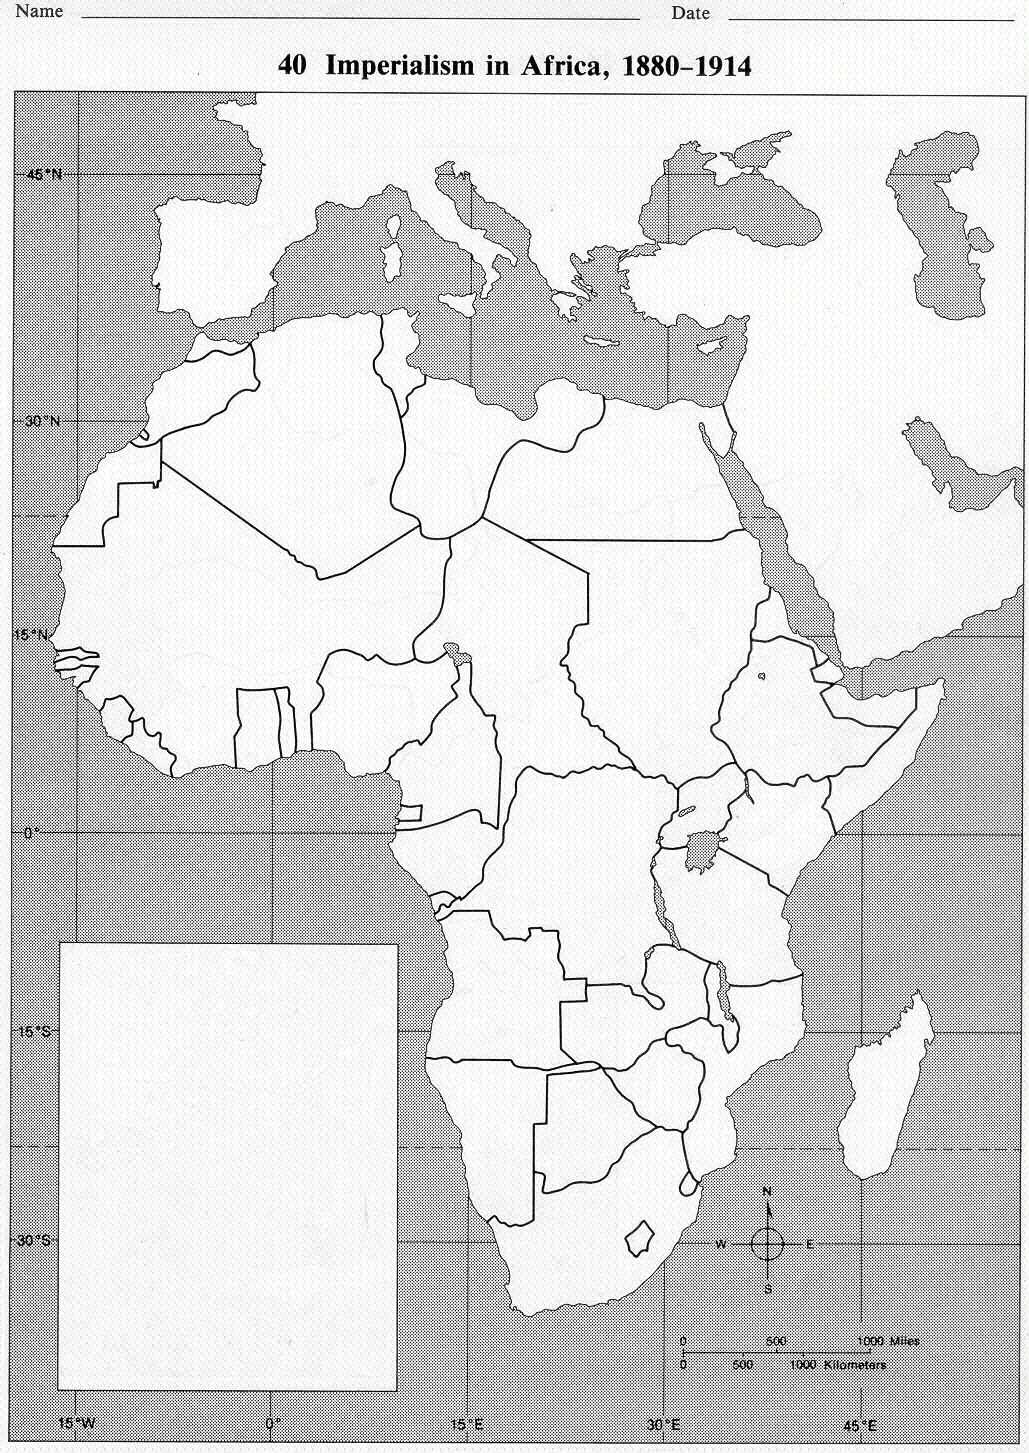 40 Imperialism In Africa Map | Campus Map